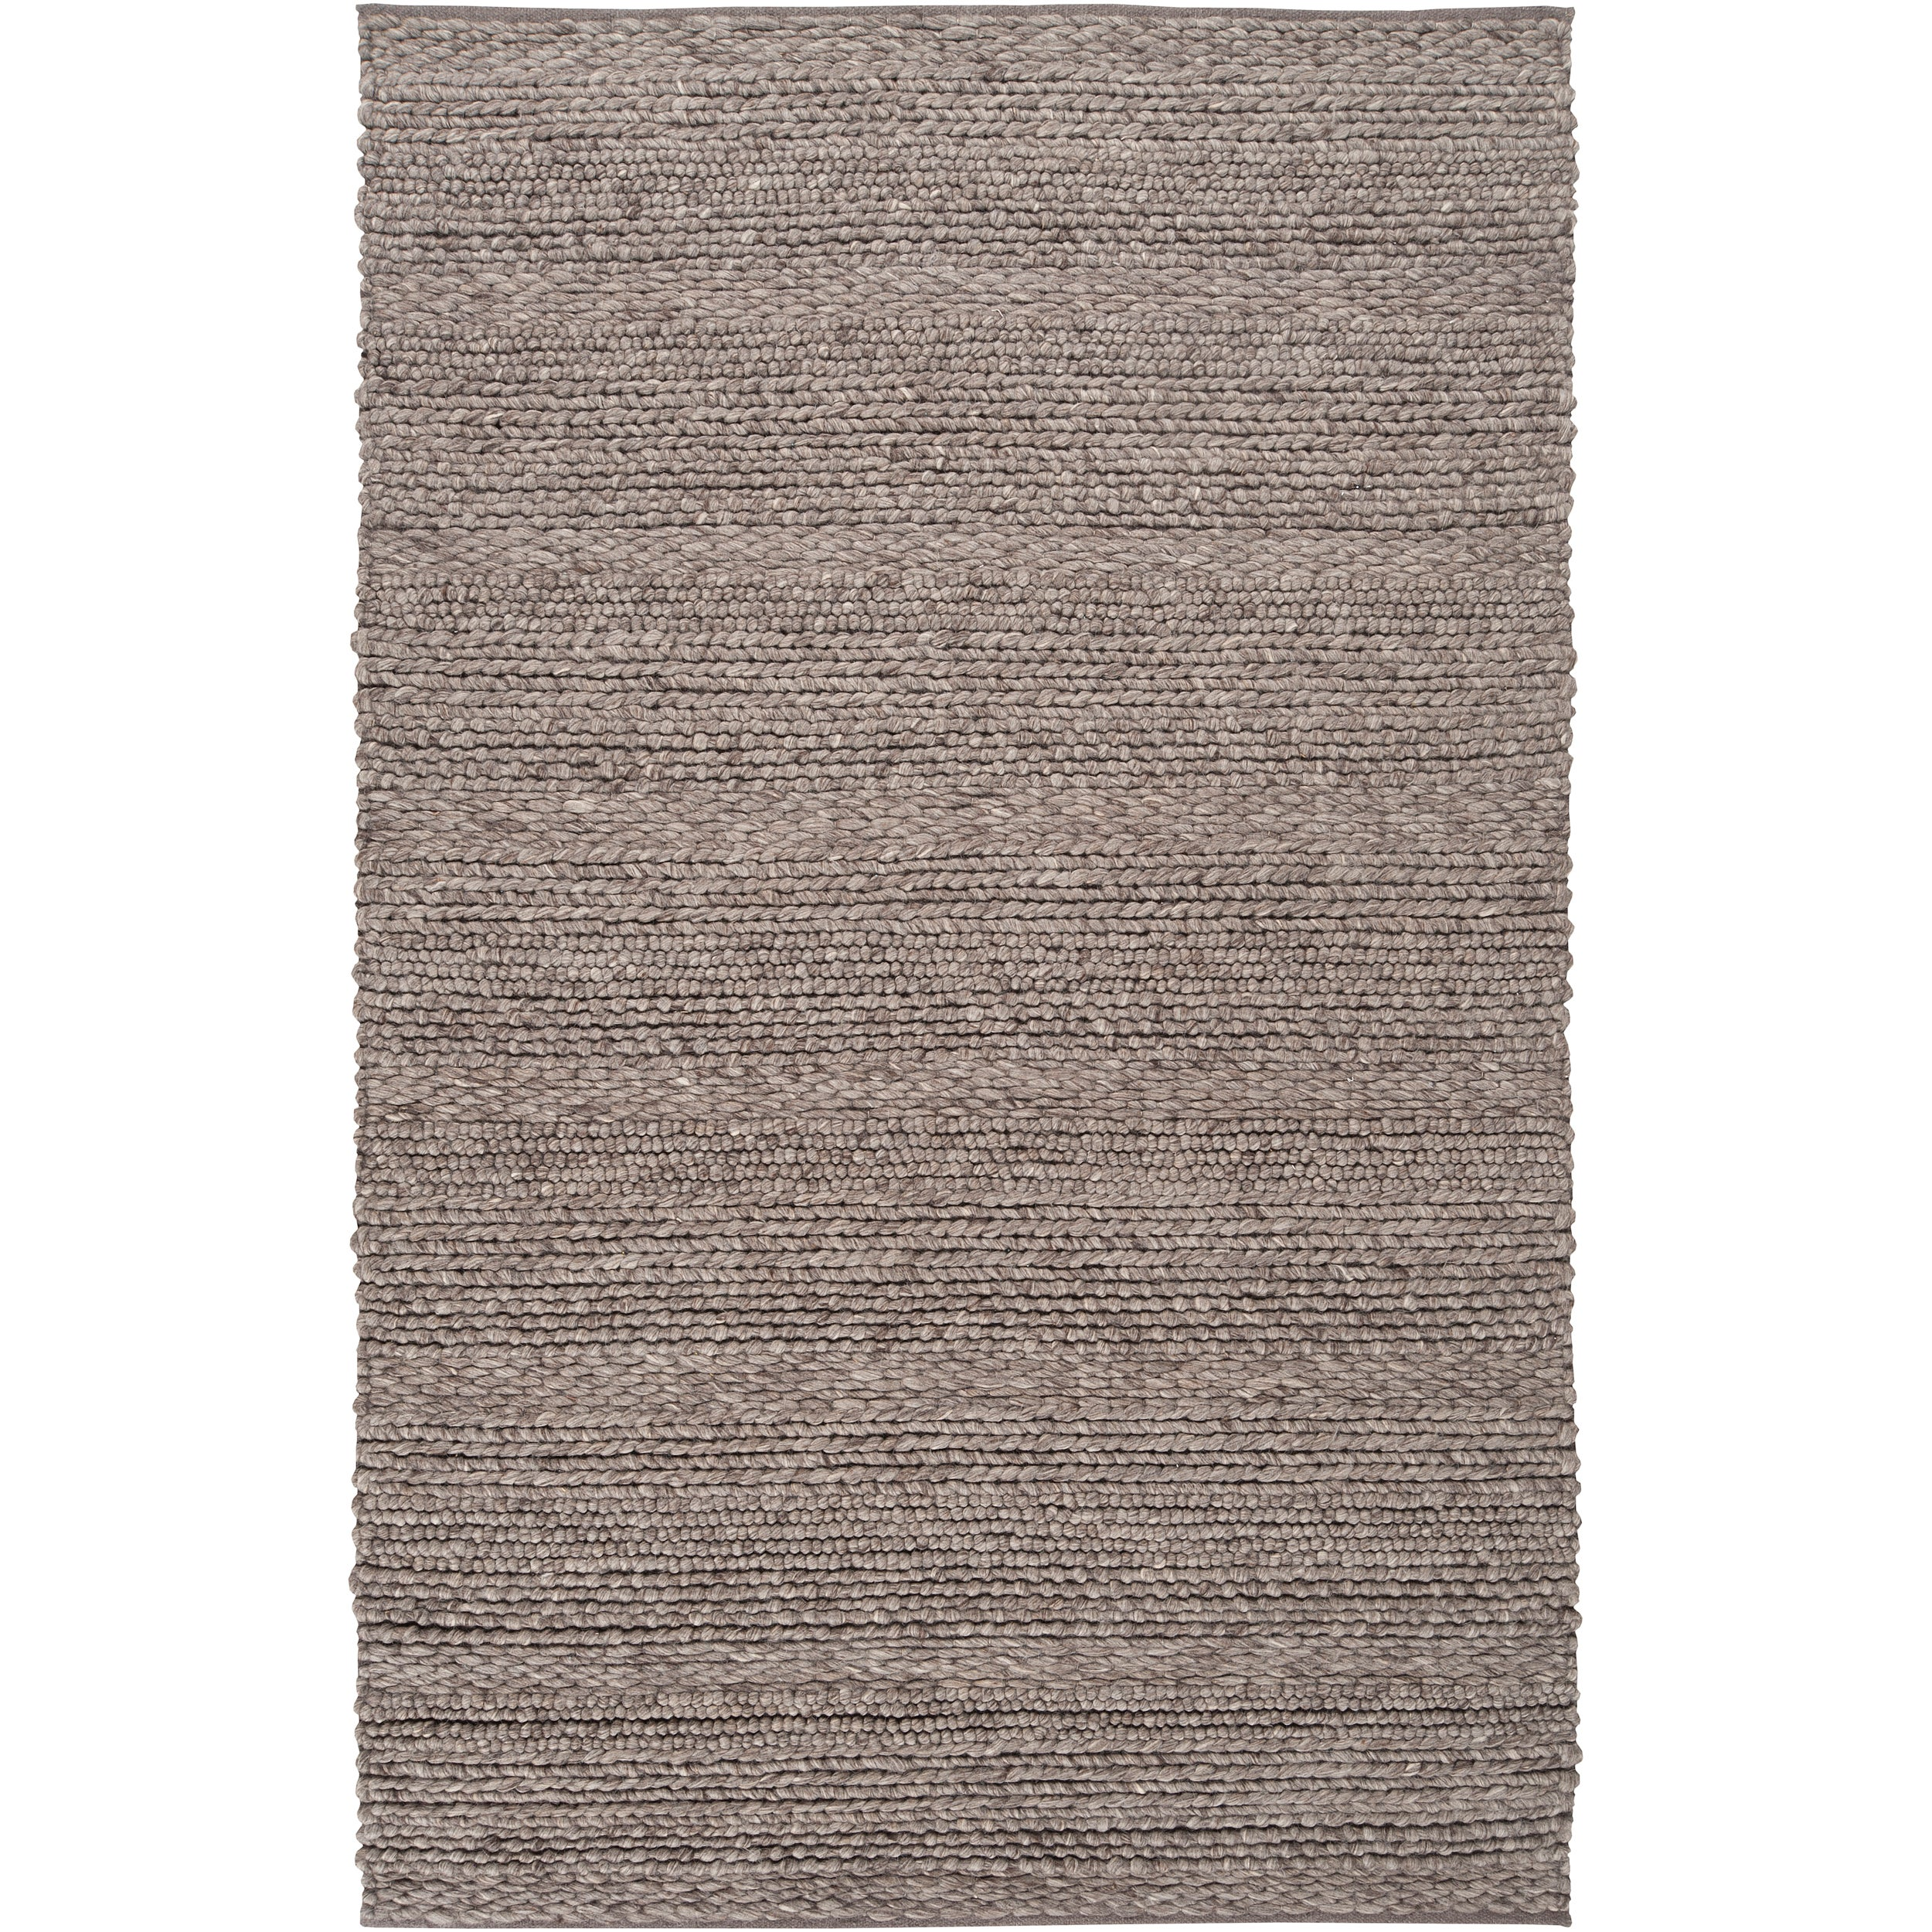 Hand-woven Casual Solid Grey Tame Wool Rug (5' x 8')